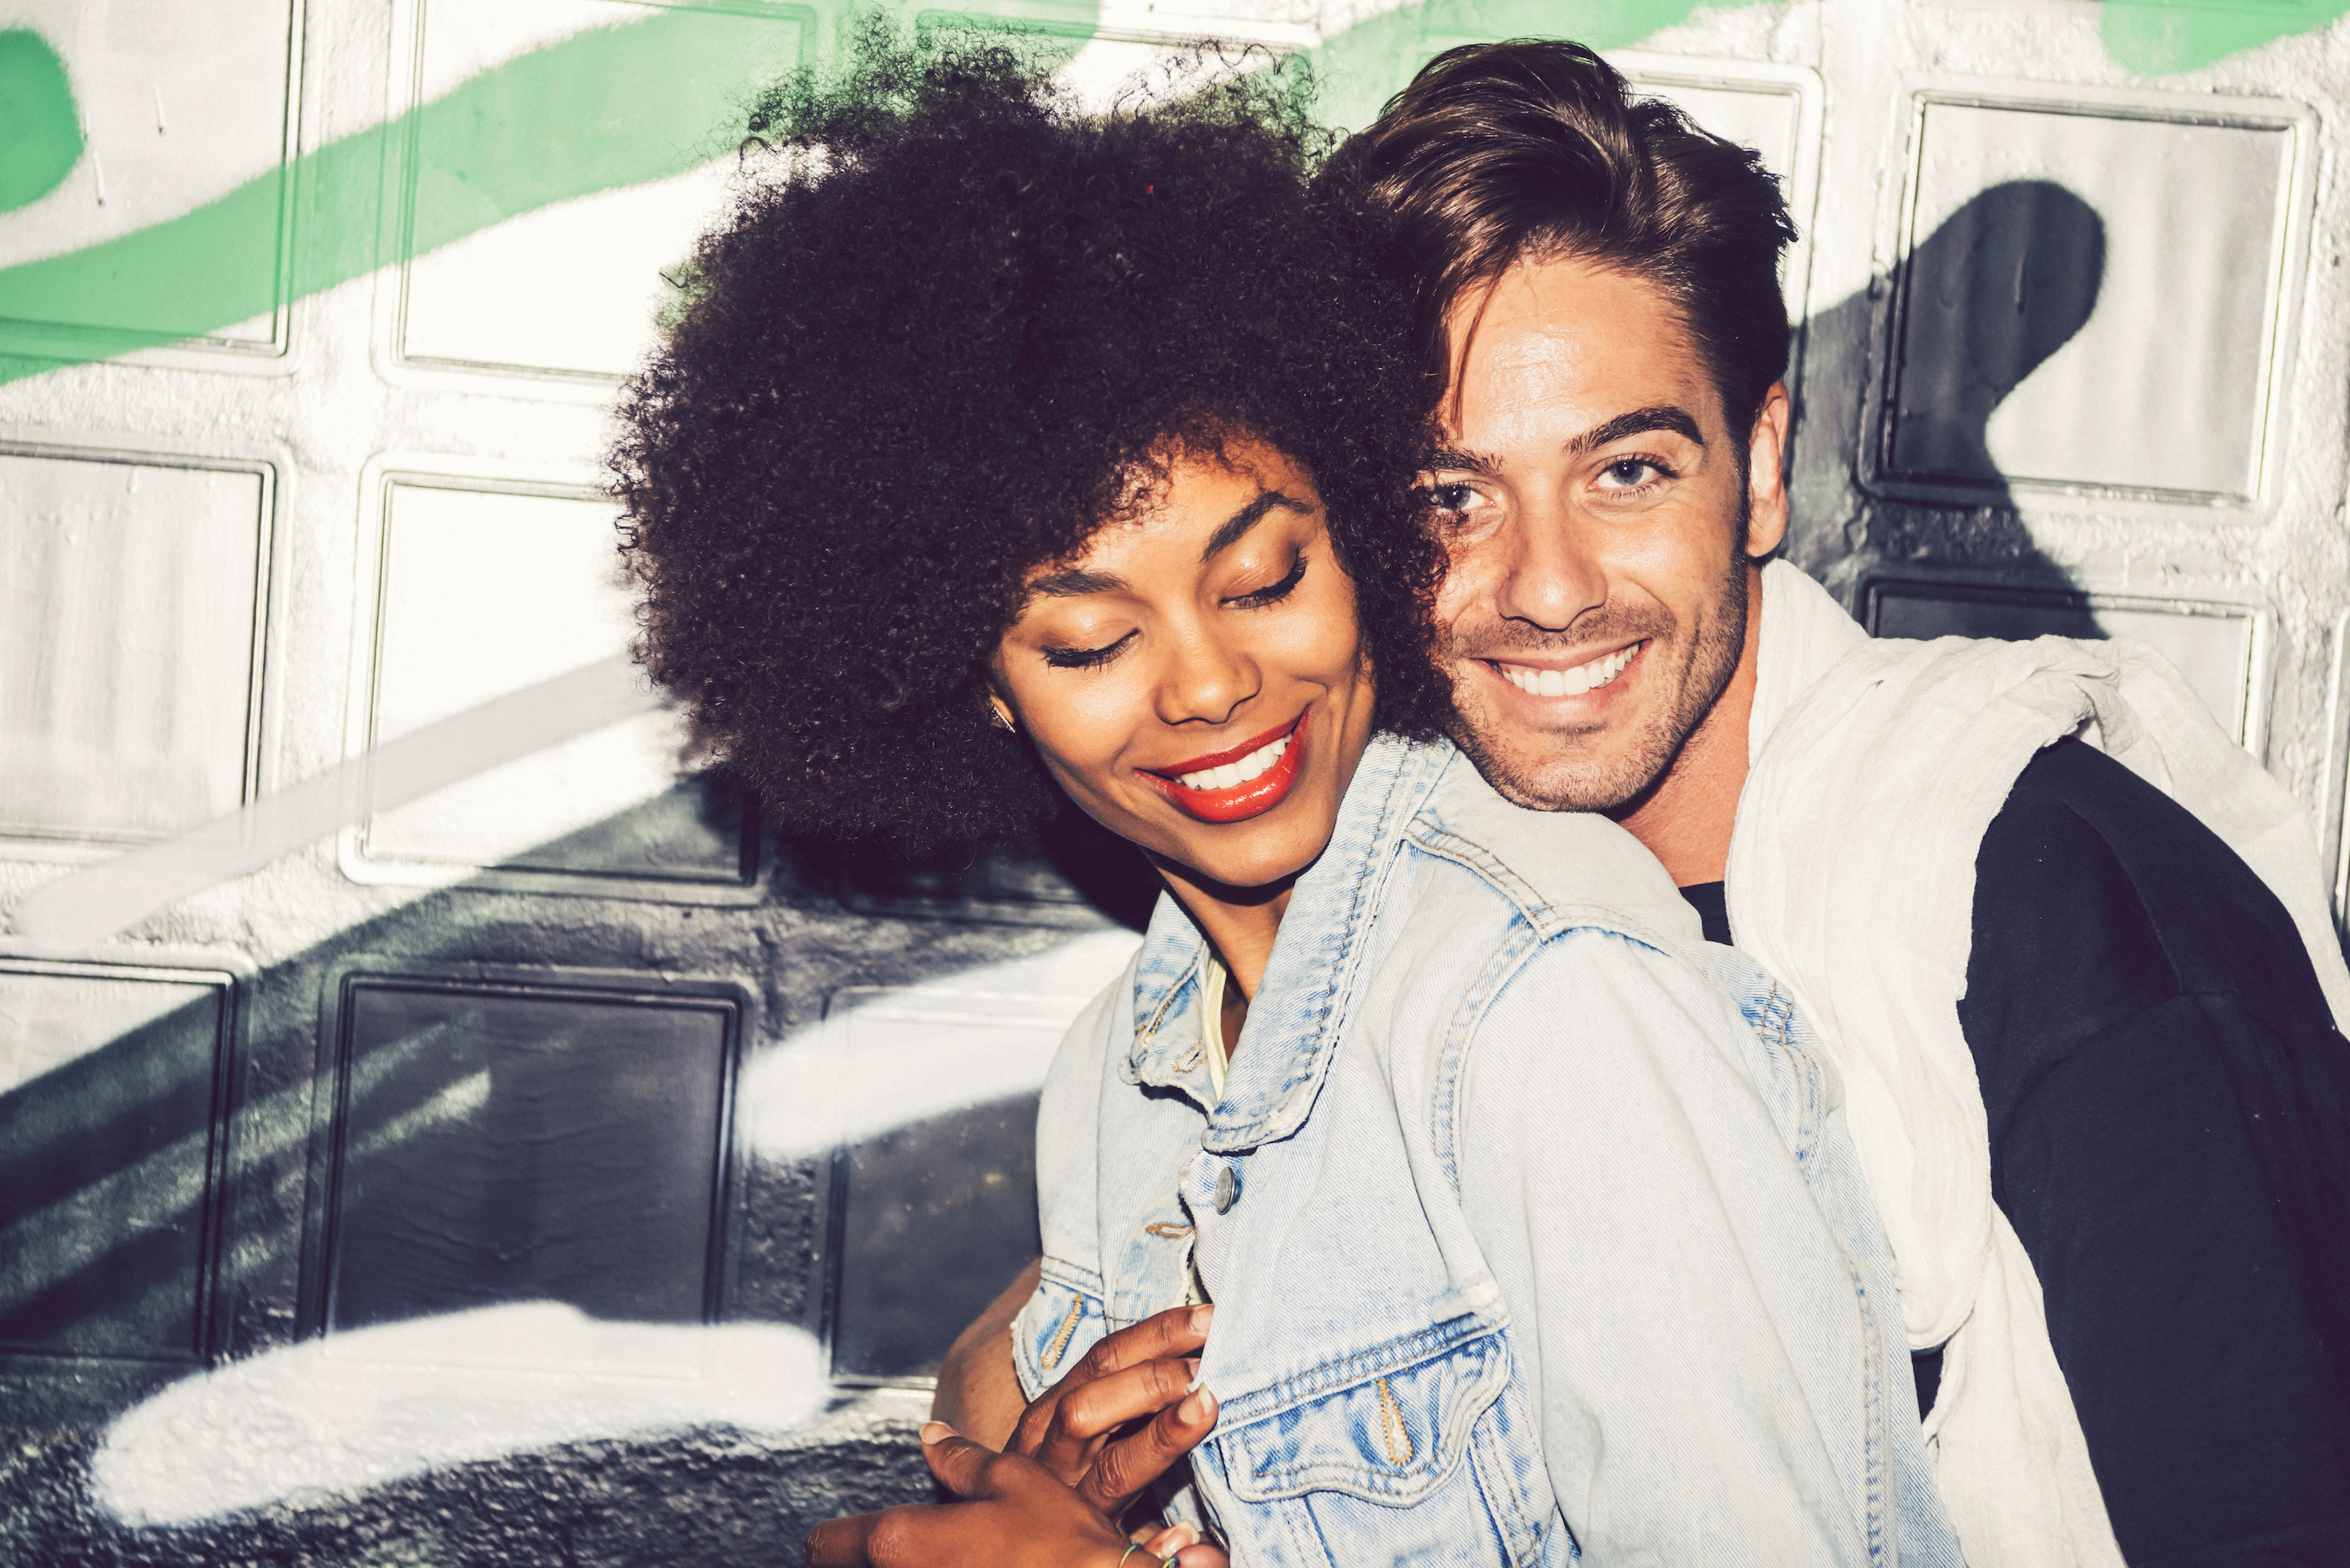 Things I learned from my interracial relationship